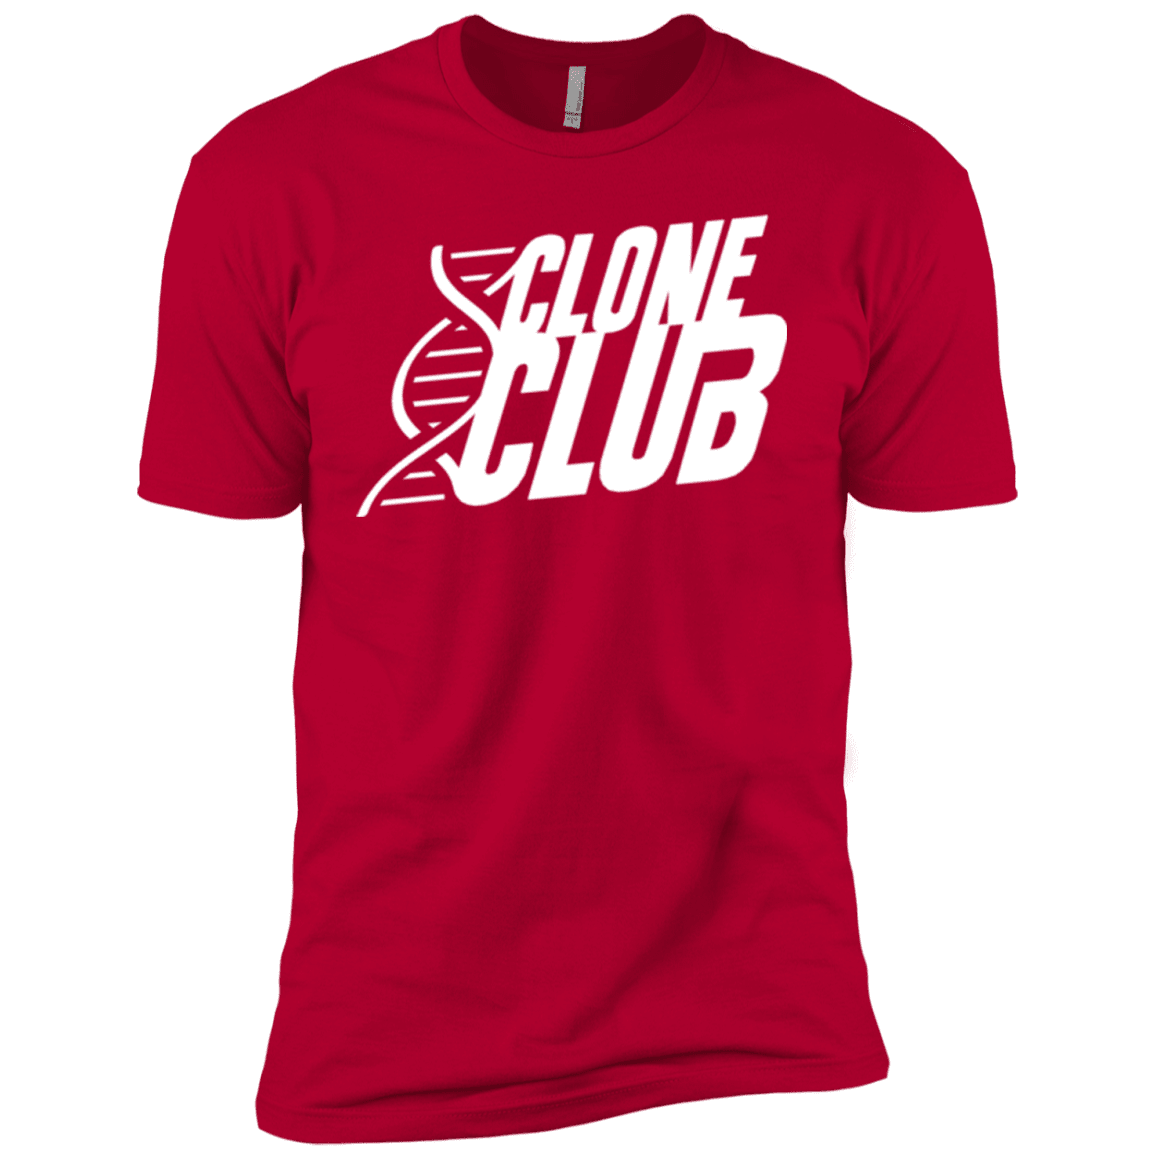 Clone Club Boys Premium T-Shirt